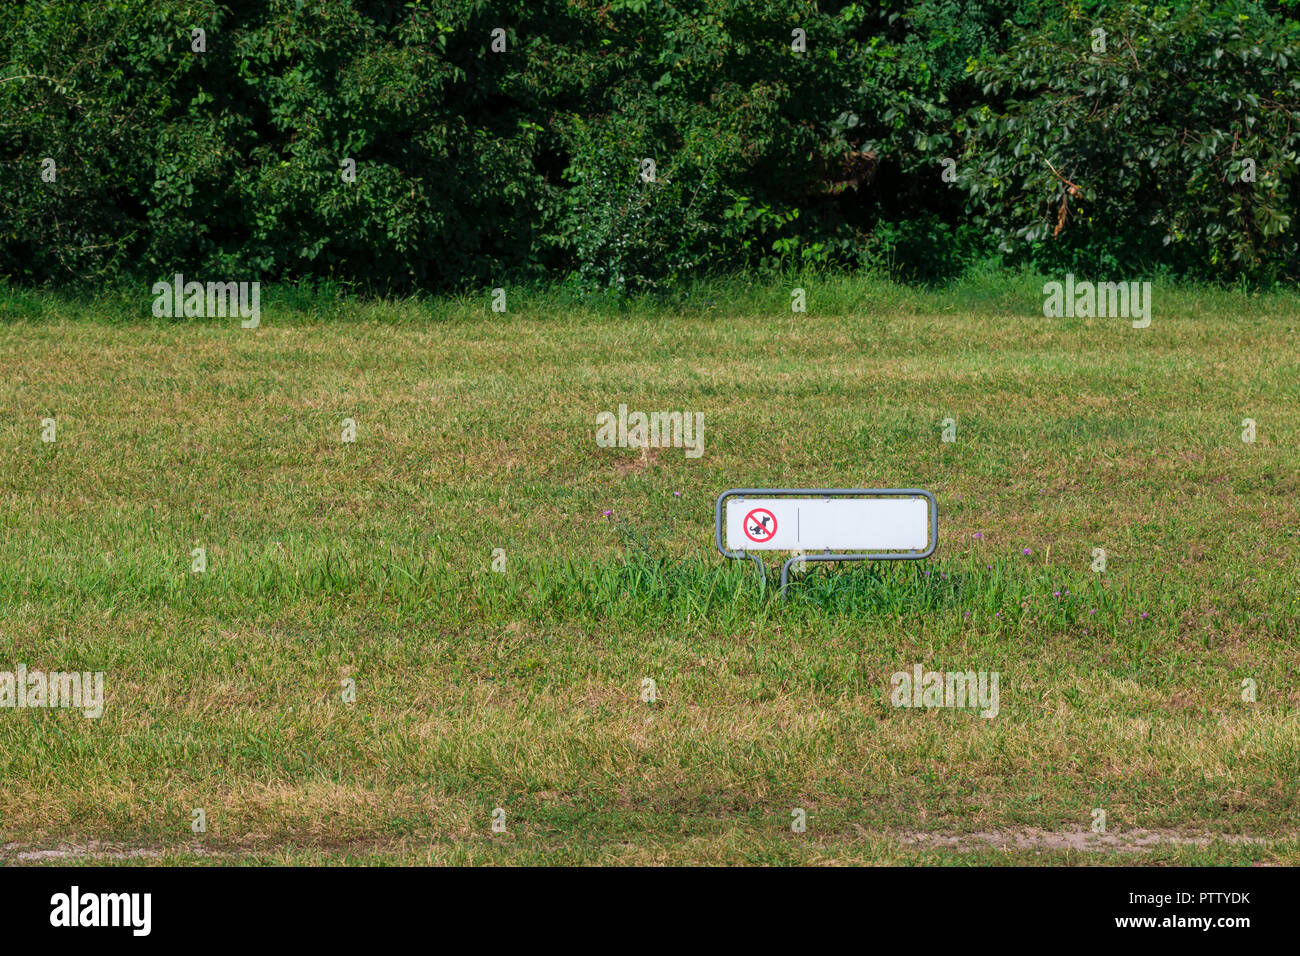 No dogs allowed sign on a meadow Stock Photo